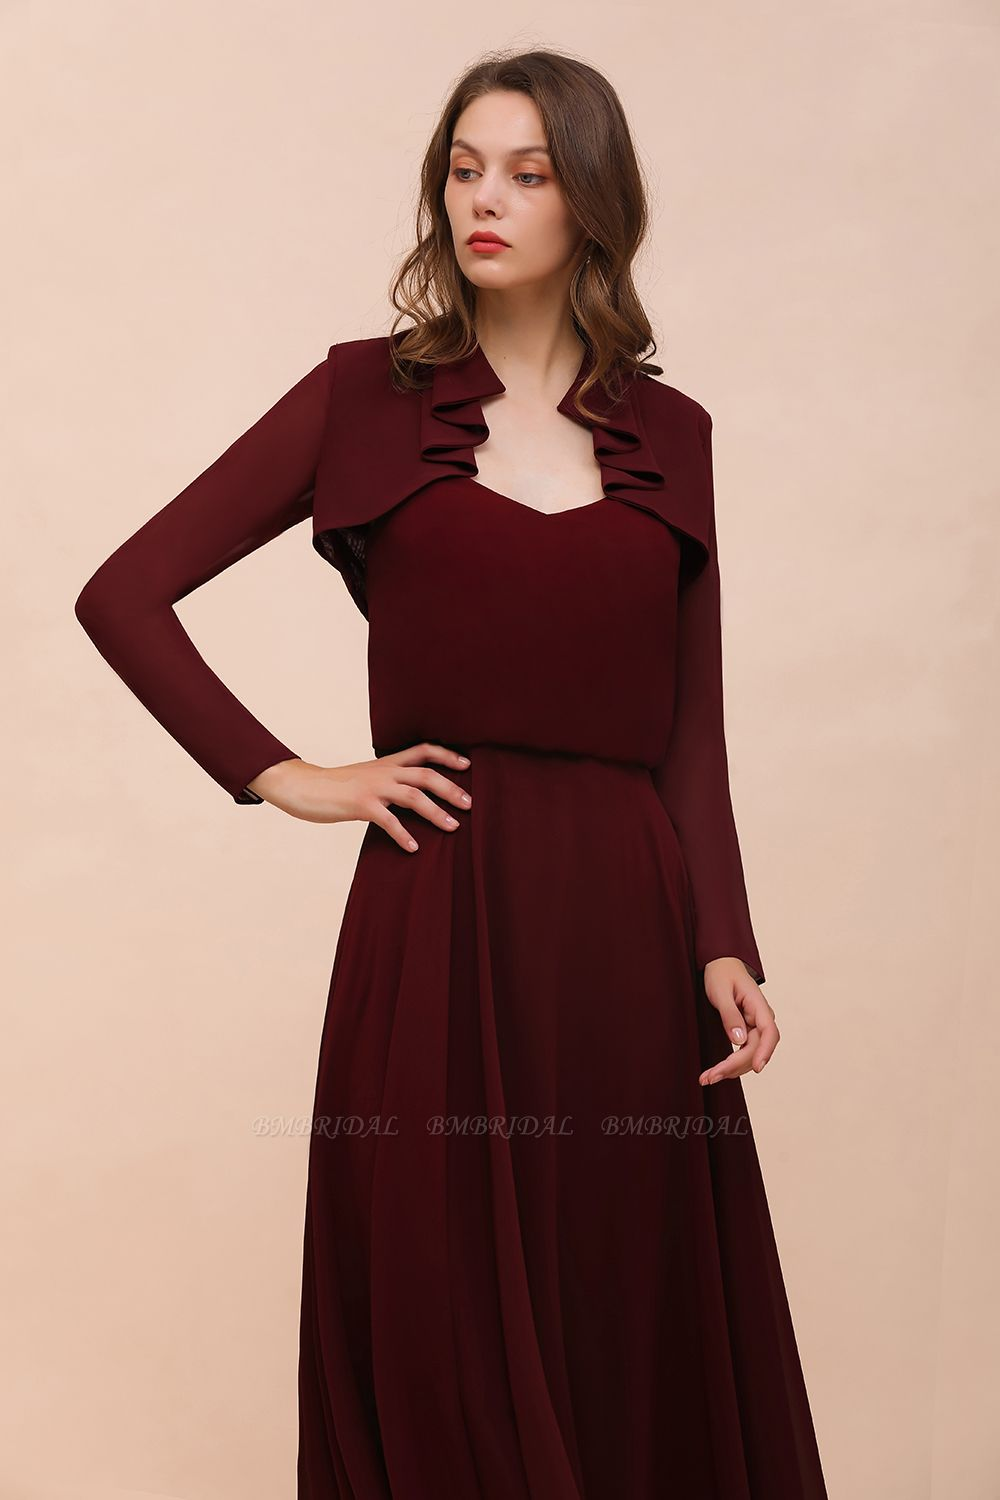 BMbridal Burgundy Chiffon Wraps with Long Sleeves Online